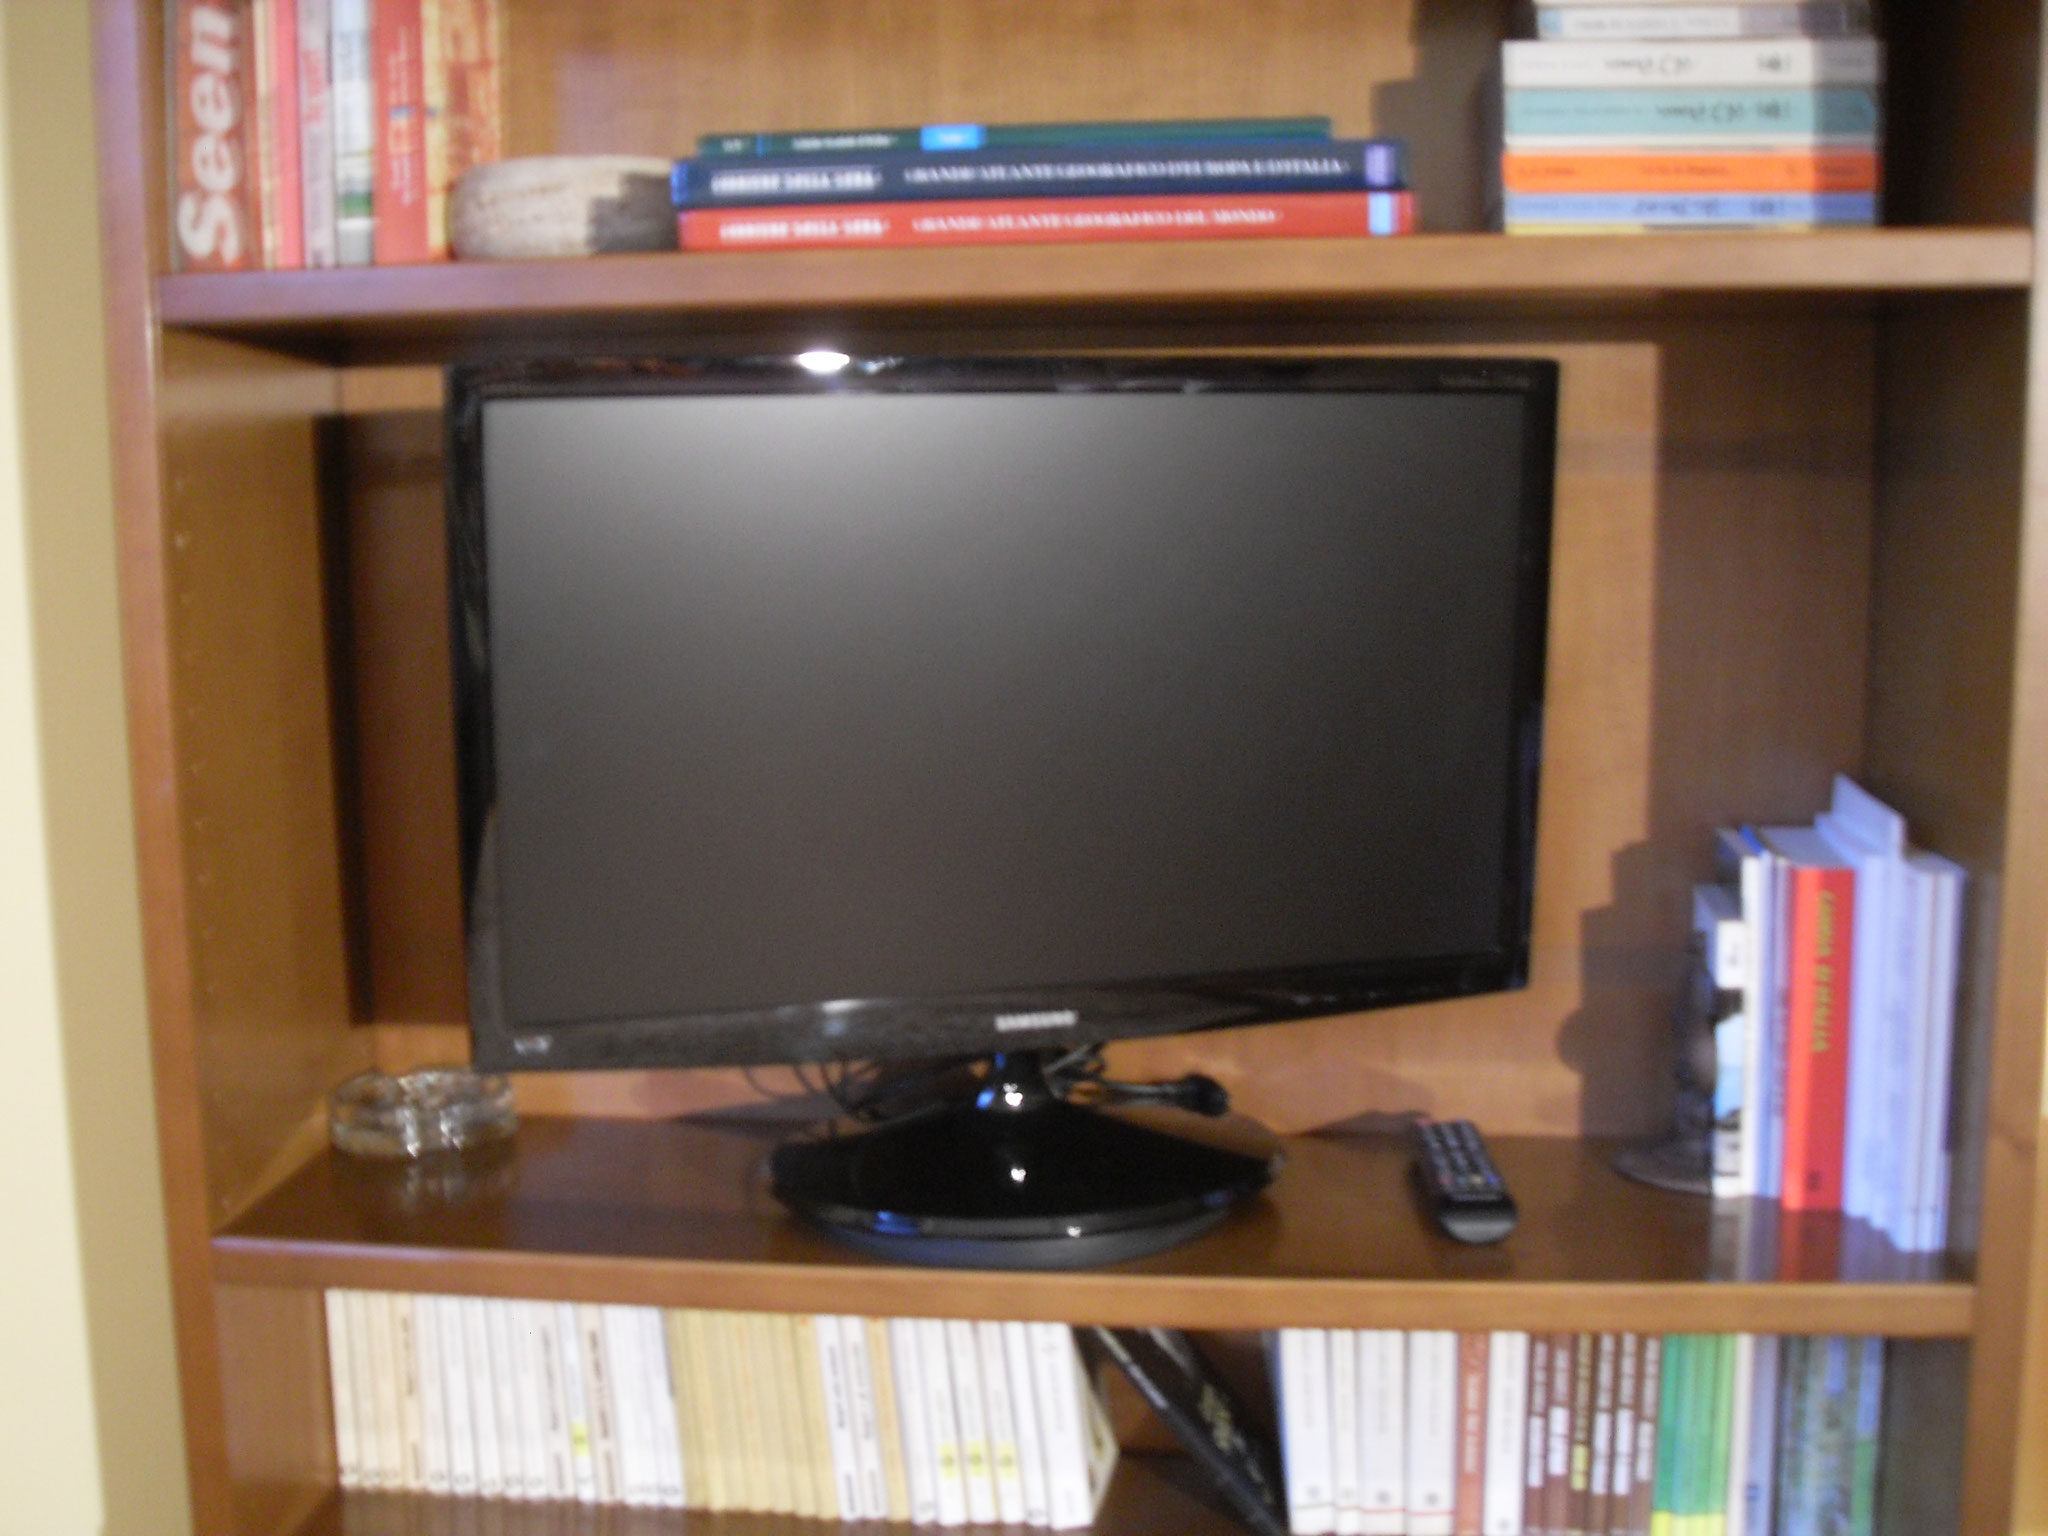 "Tv samsung led 28"", HDMI, Usb, Scart- Libri in varie lingue."